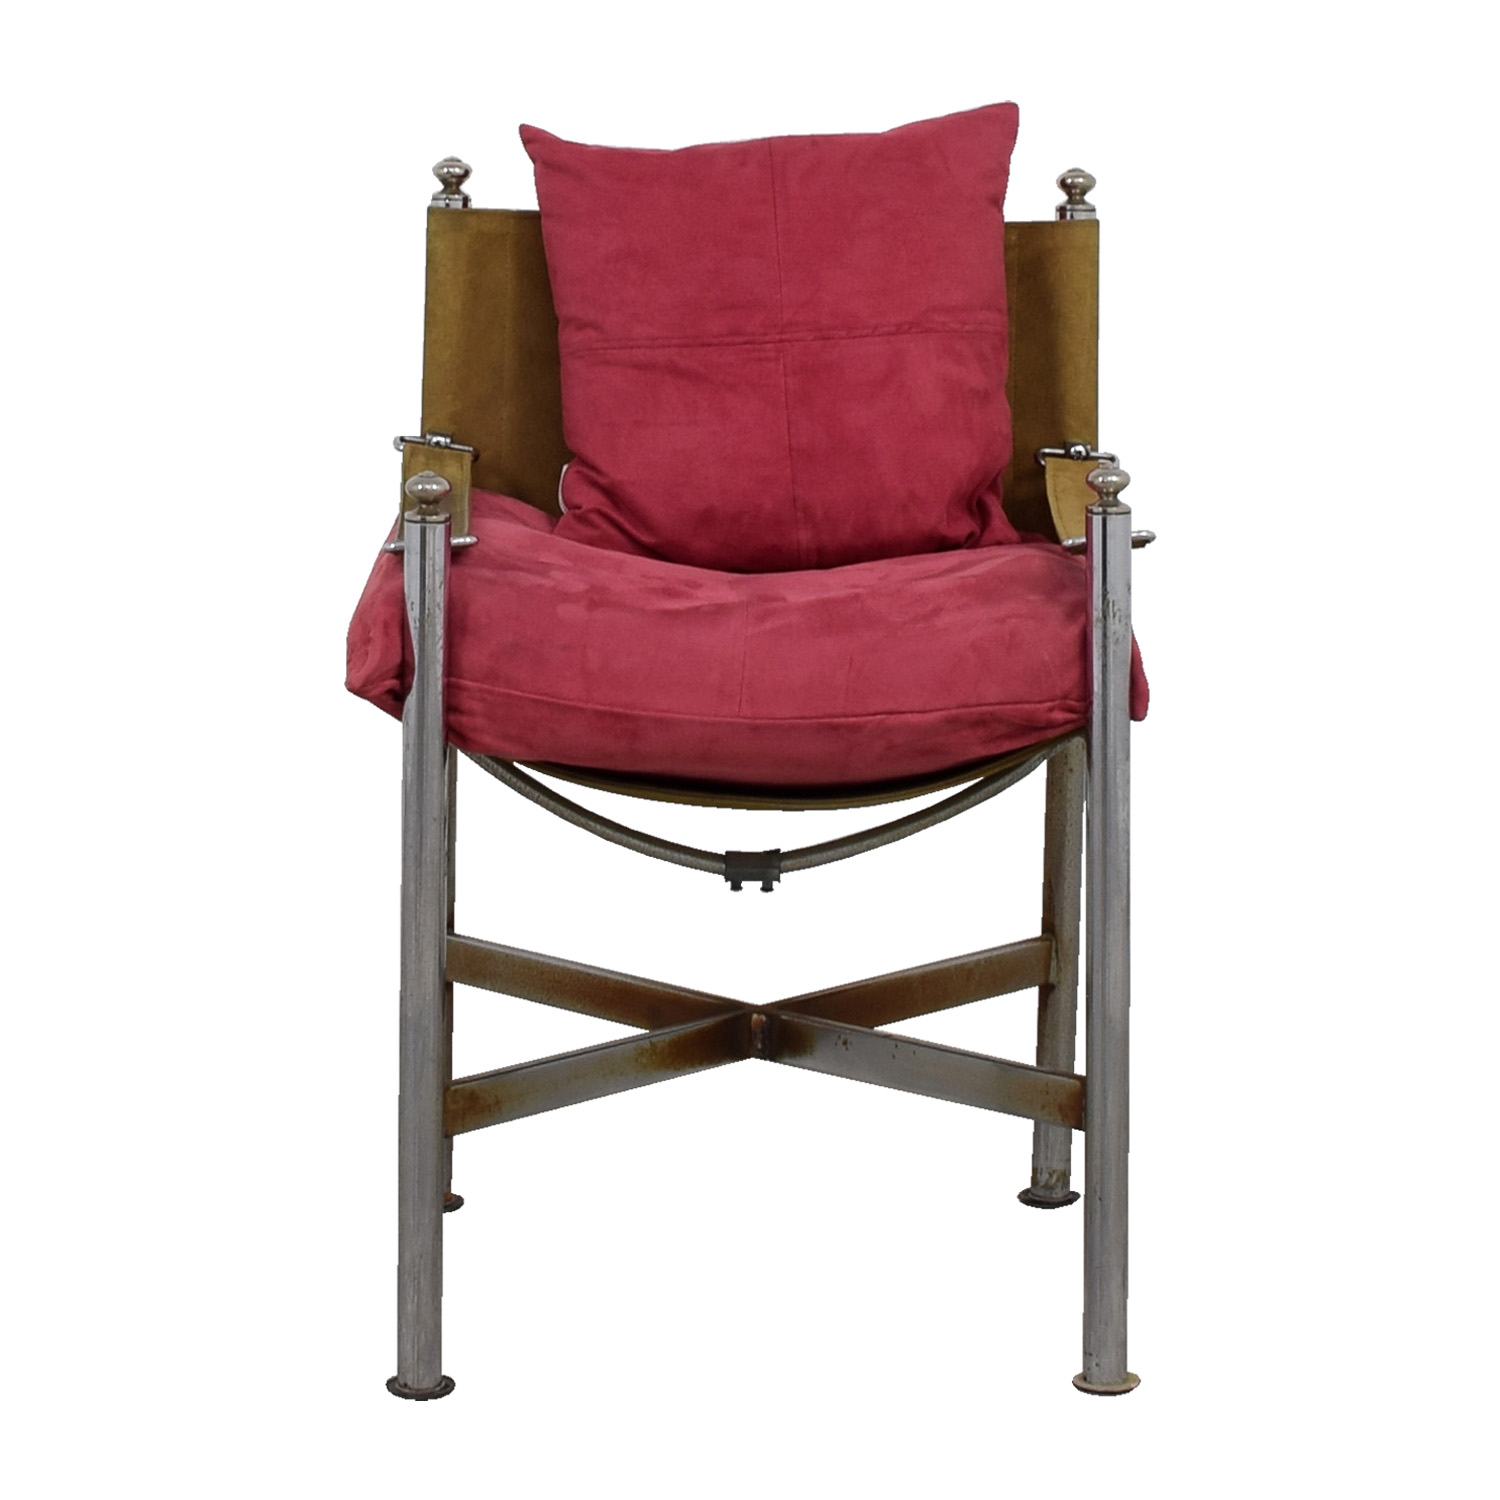 buy  Retro Pink and Tan Suede and Leather Chair online